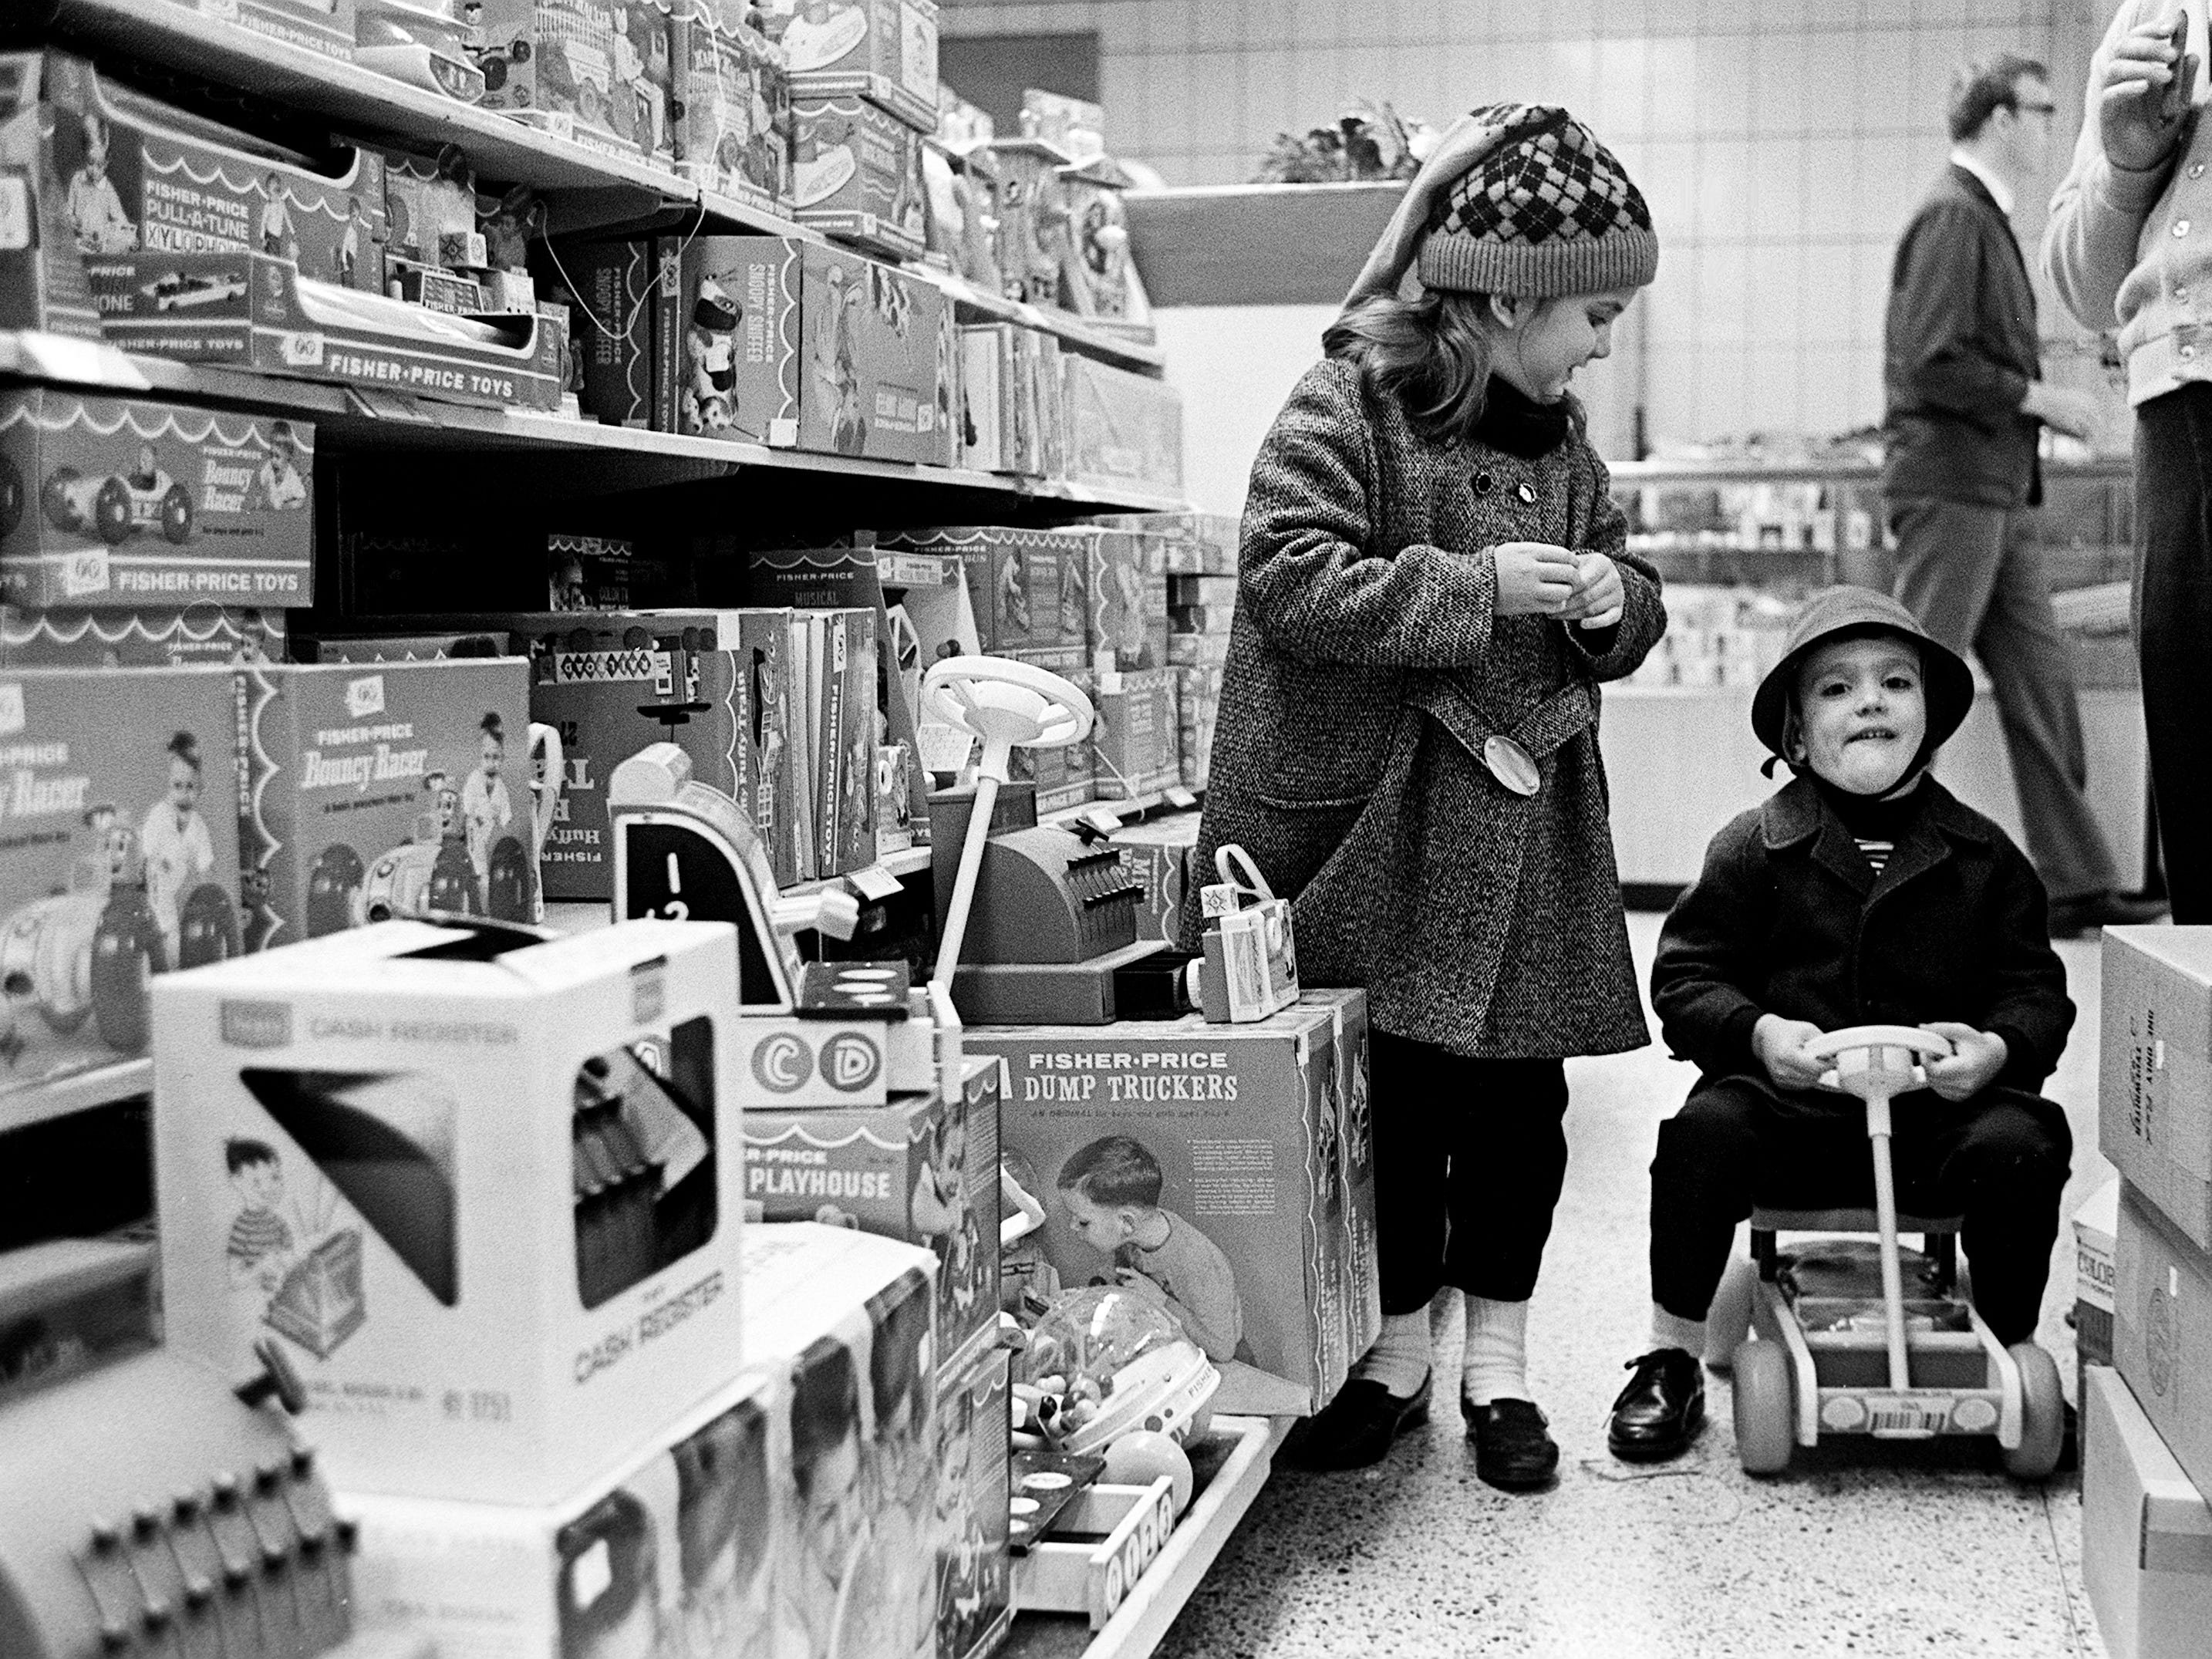 Sherry Spray, left, 6, watches her brother Jerry, 1, try out one of the many Christmas toys Santa might have in his sleight this year at a downtown Nashville department store Dec. 12, 1968.